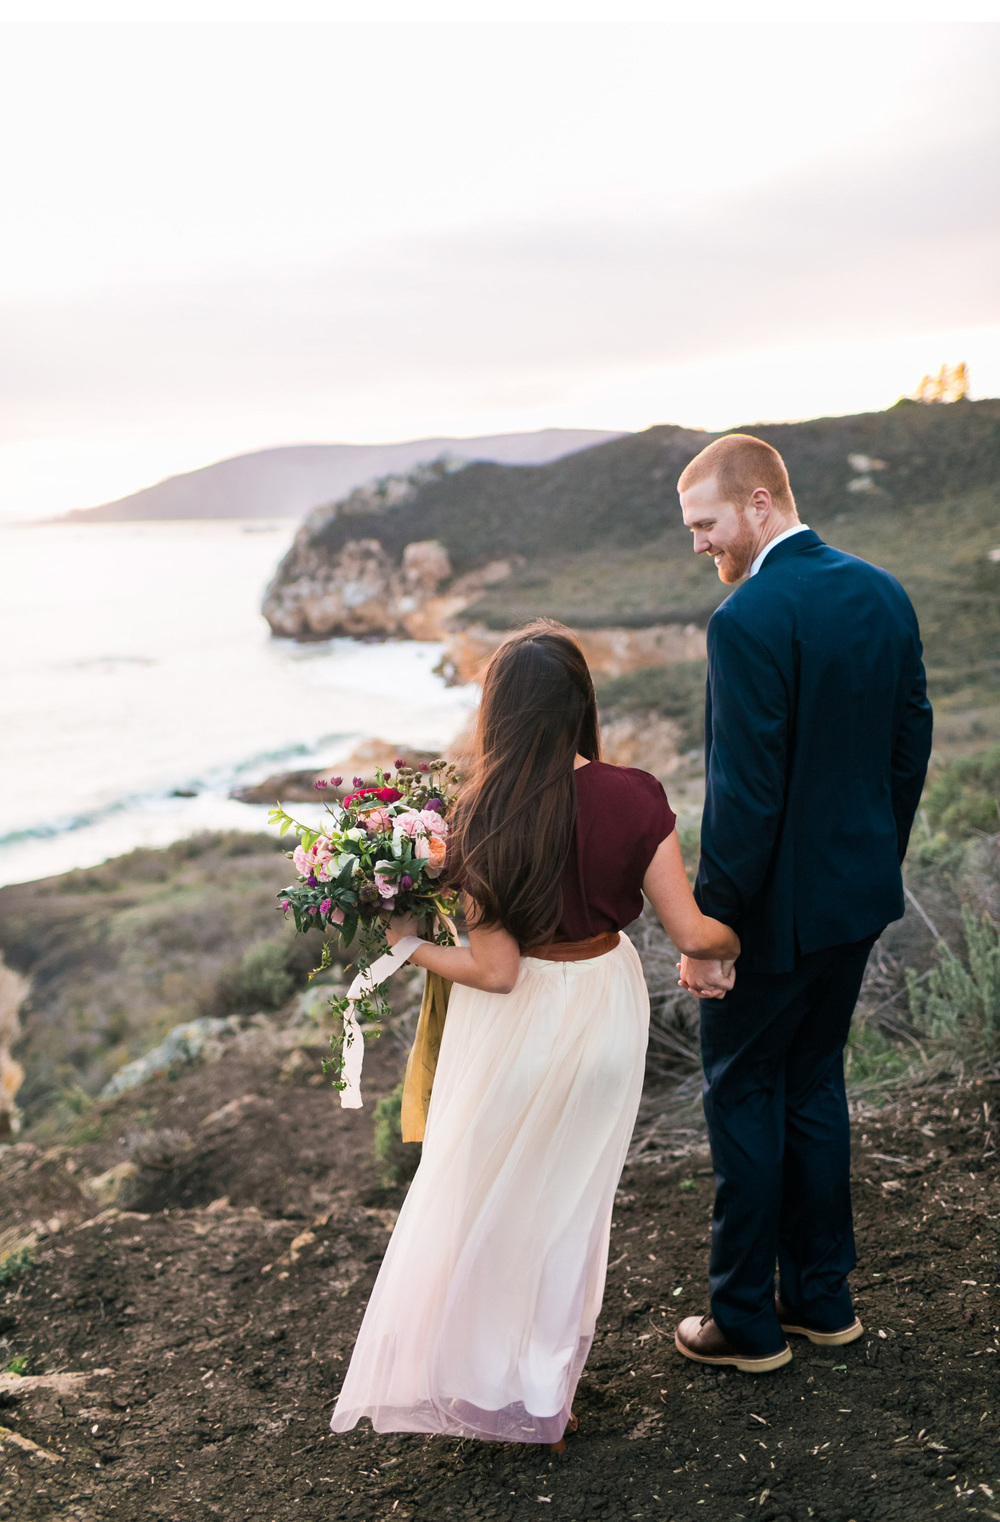 Santa-Barbara-Wedding-Photographer-Natalie-Schutt-Photography_02.jpg